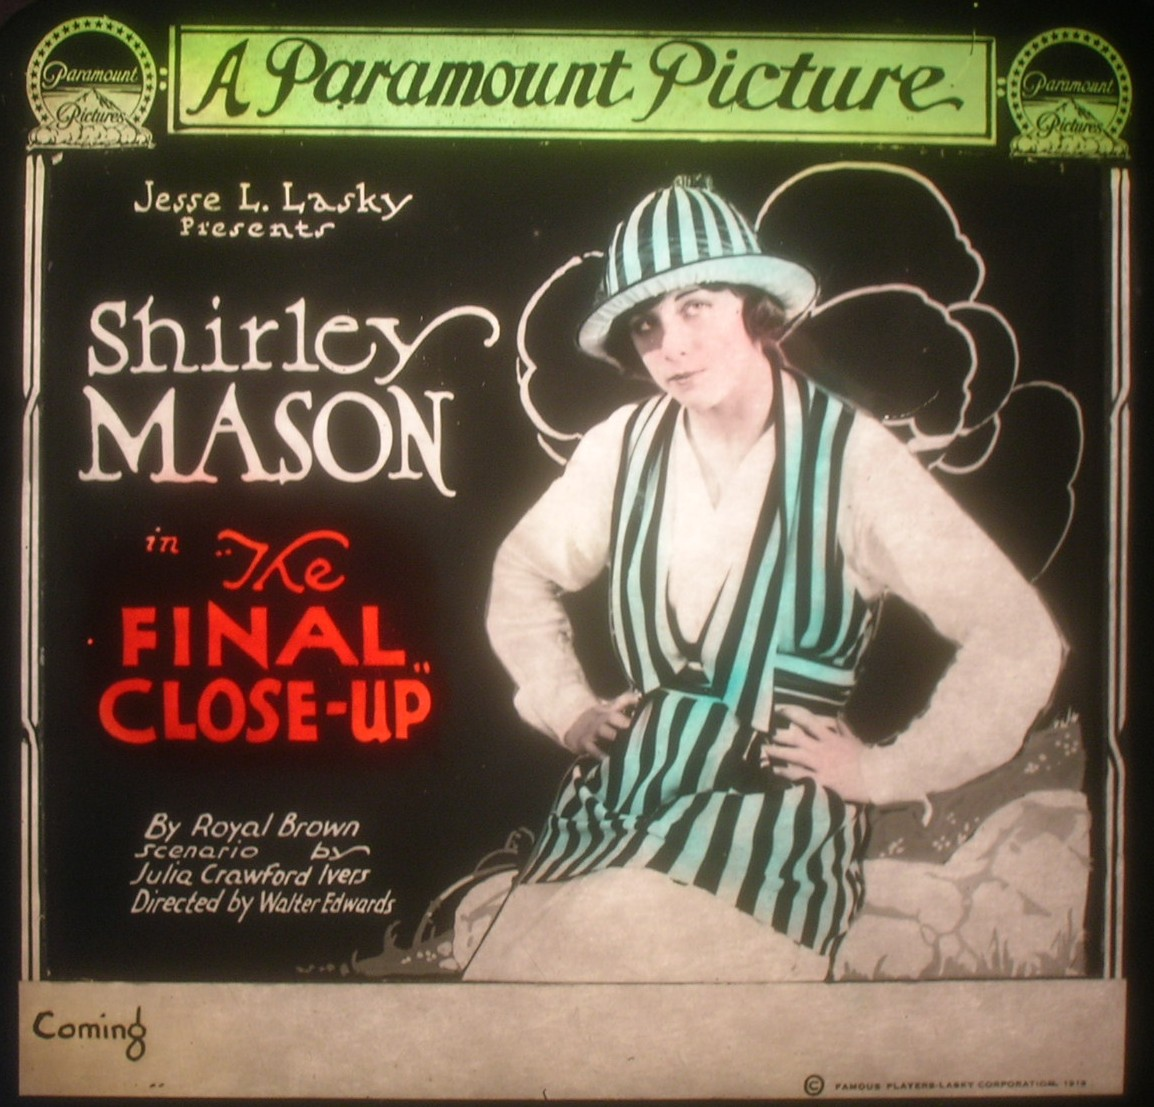 Shirley-Mason-the-final-close-up-poster